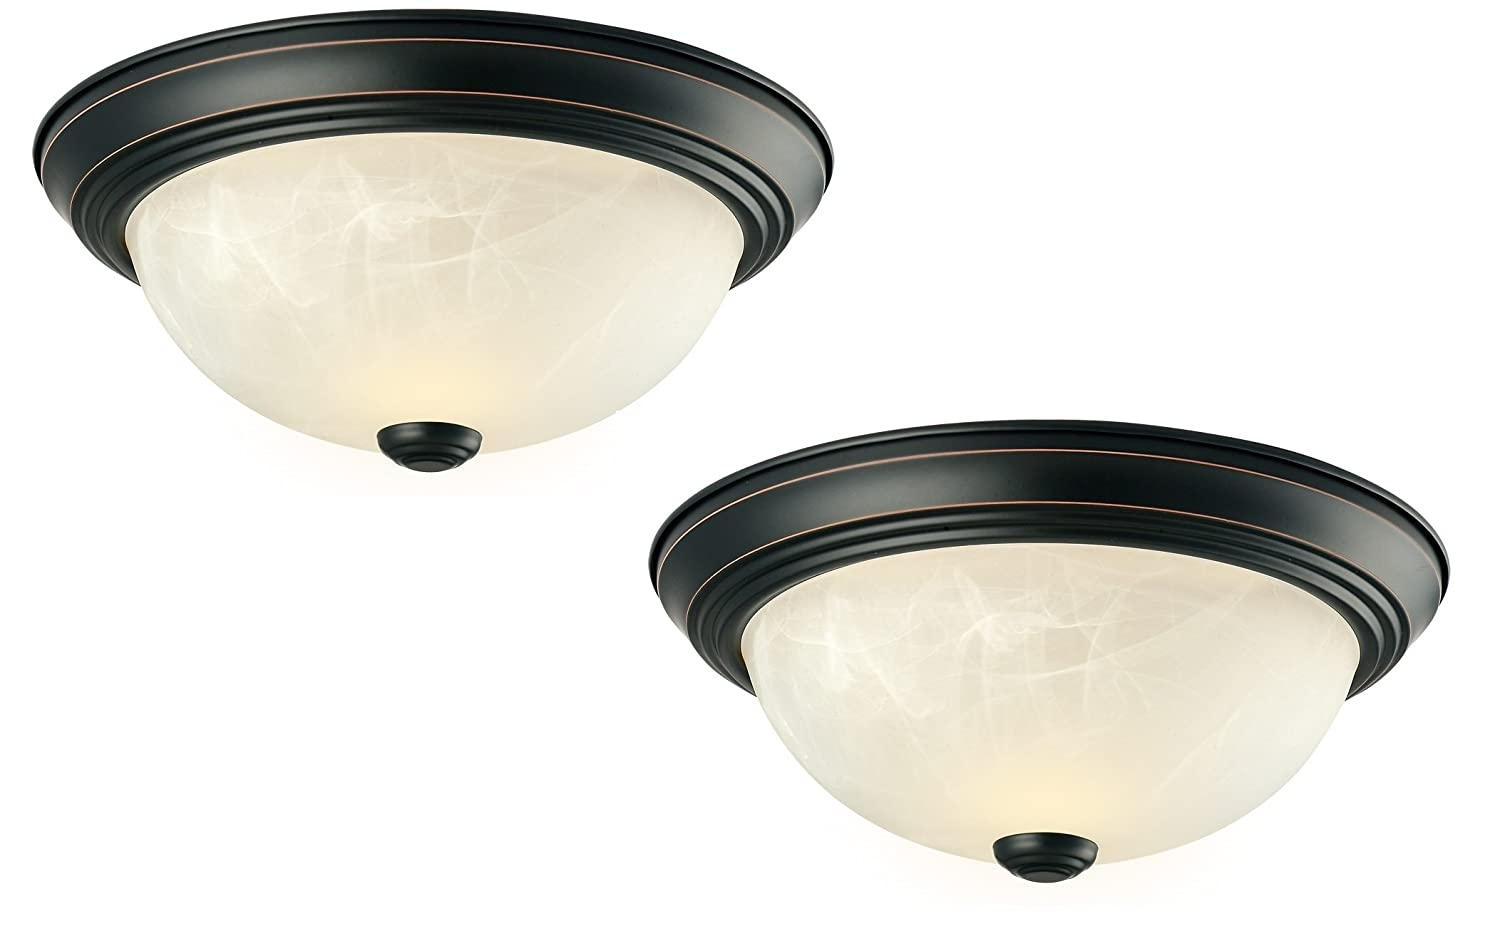 Design House 519231 2-Pack 11-Inch 2 Light Ceiling Mount, Oil Rubbed Bronze